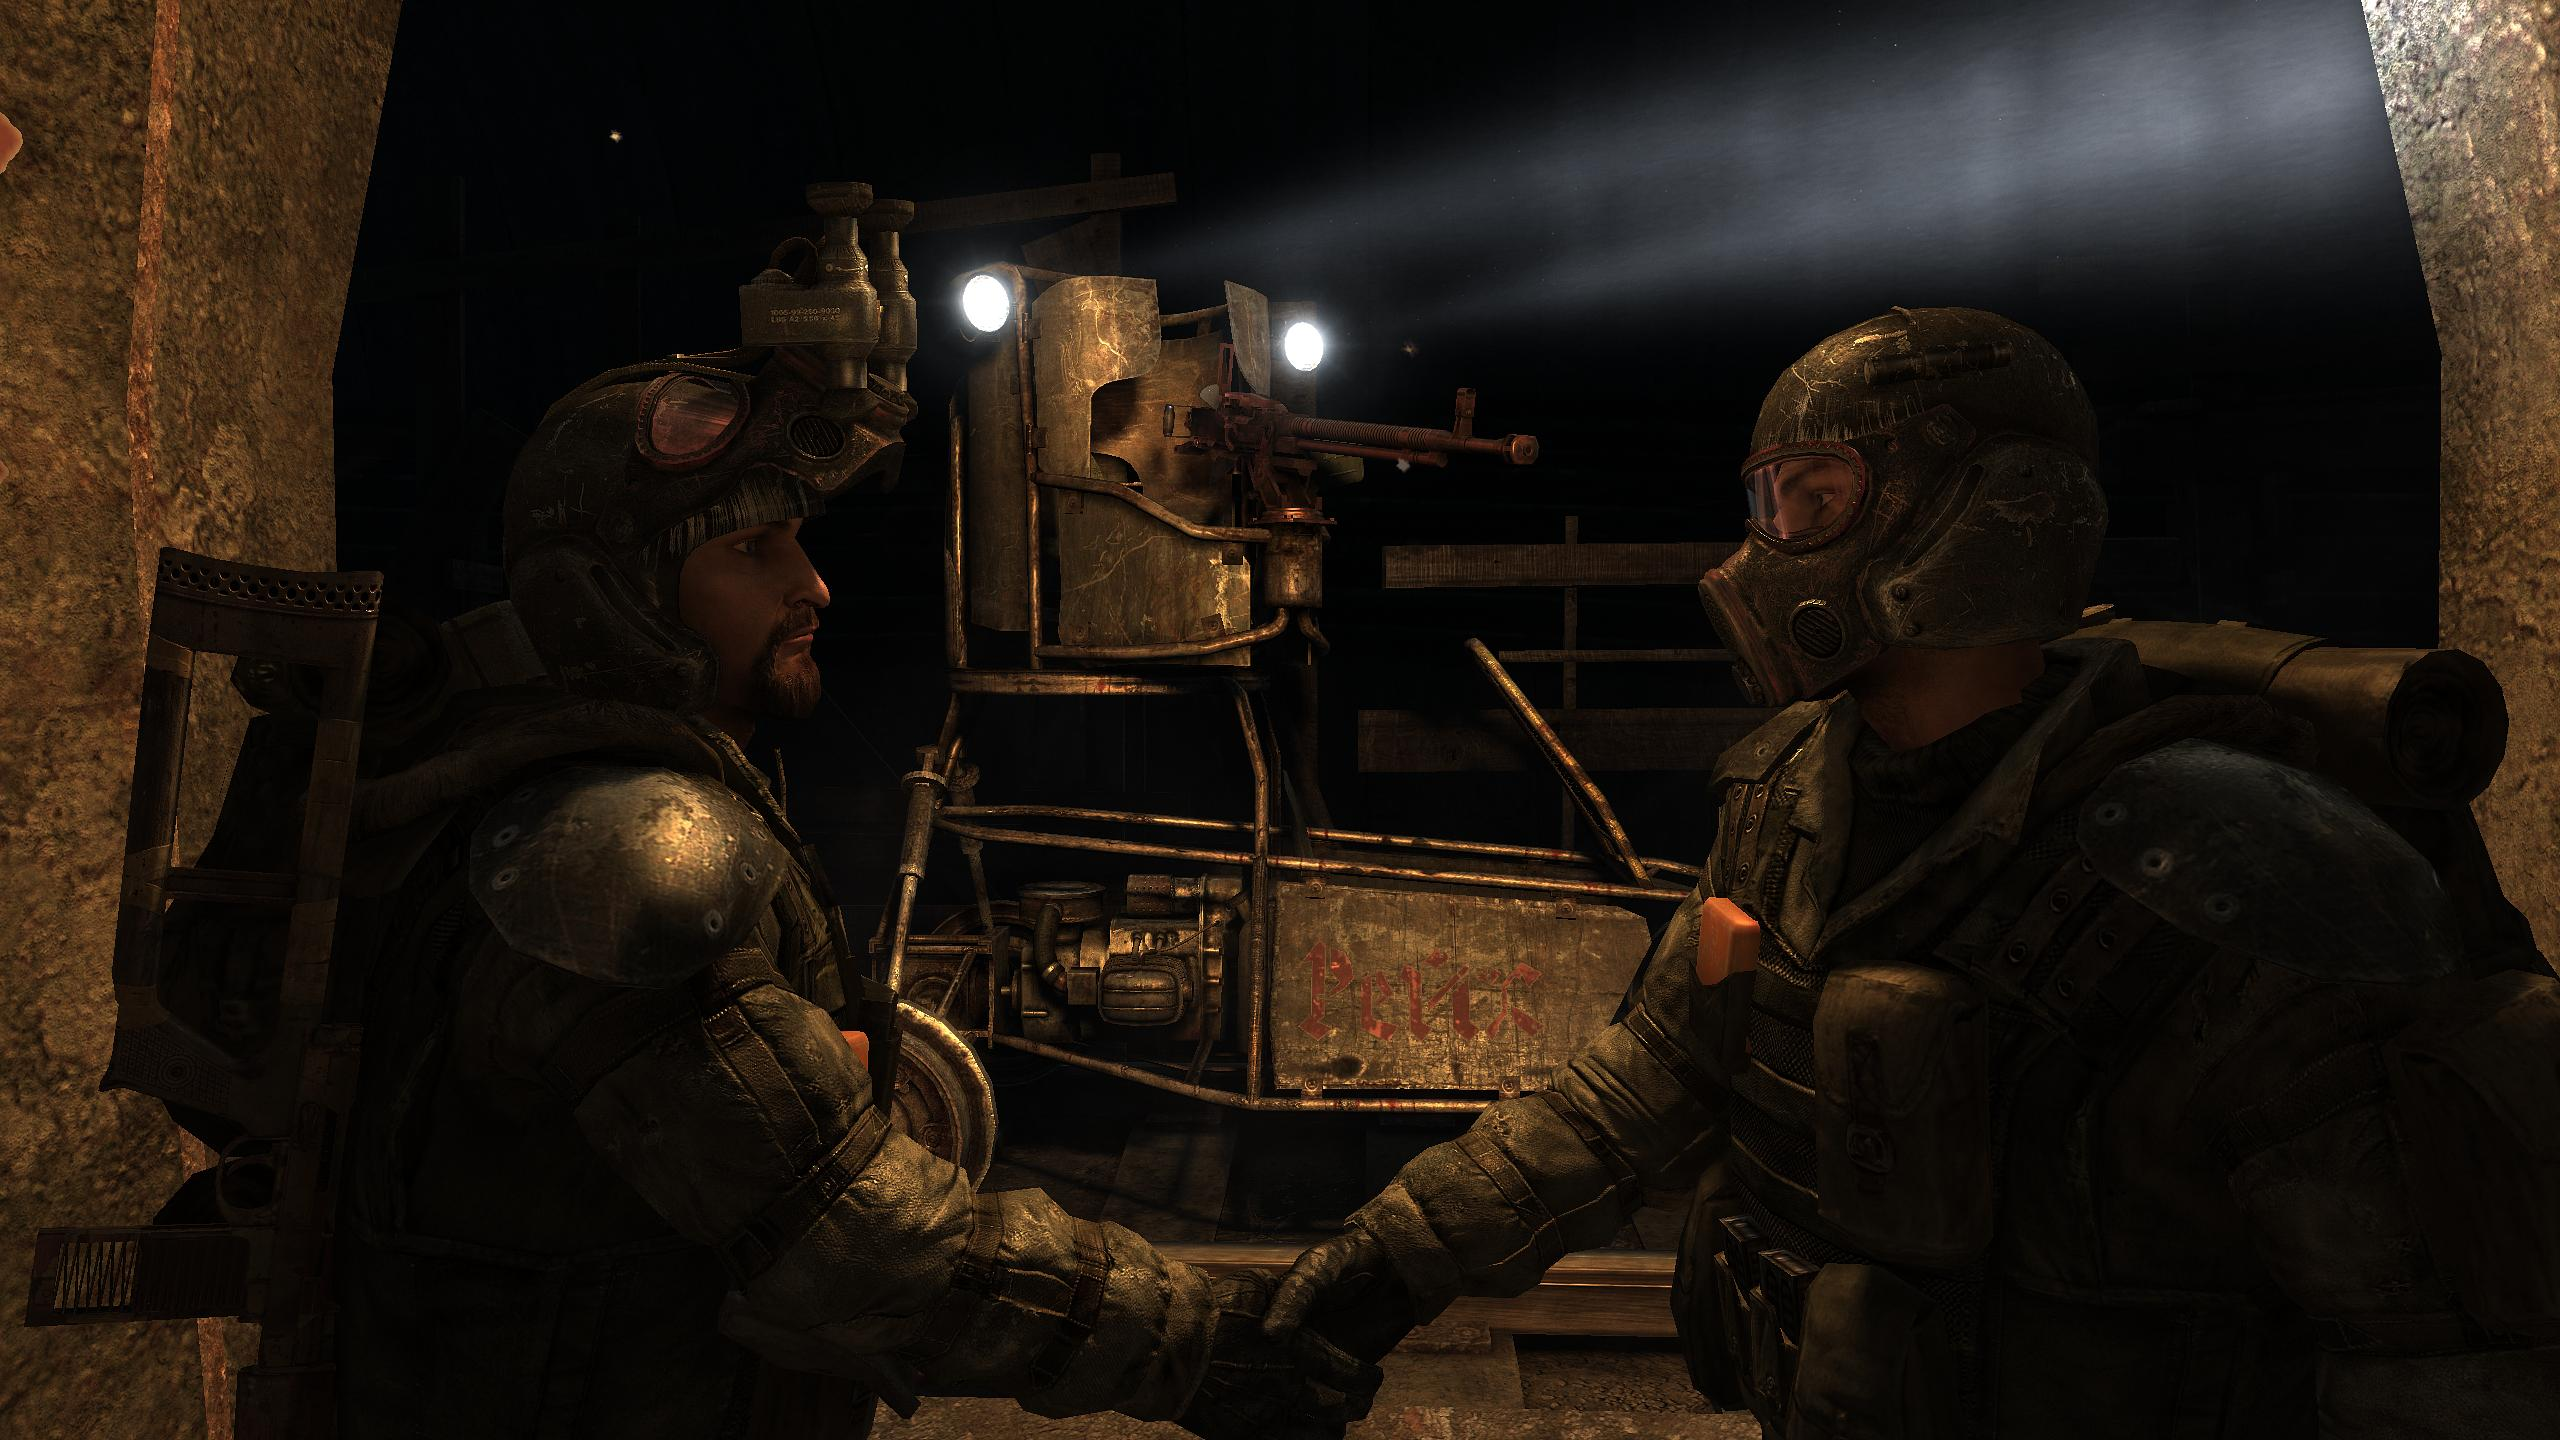 At the heart of it, Metro 2033 is about camaraderie. You're not a Ranger, but friends help out friends.